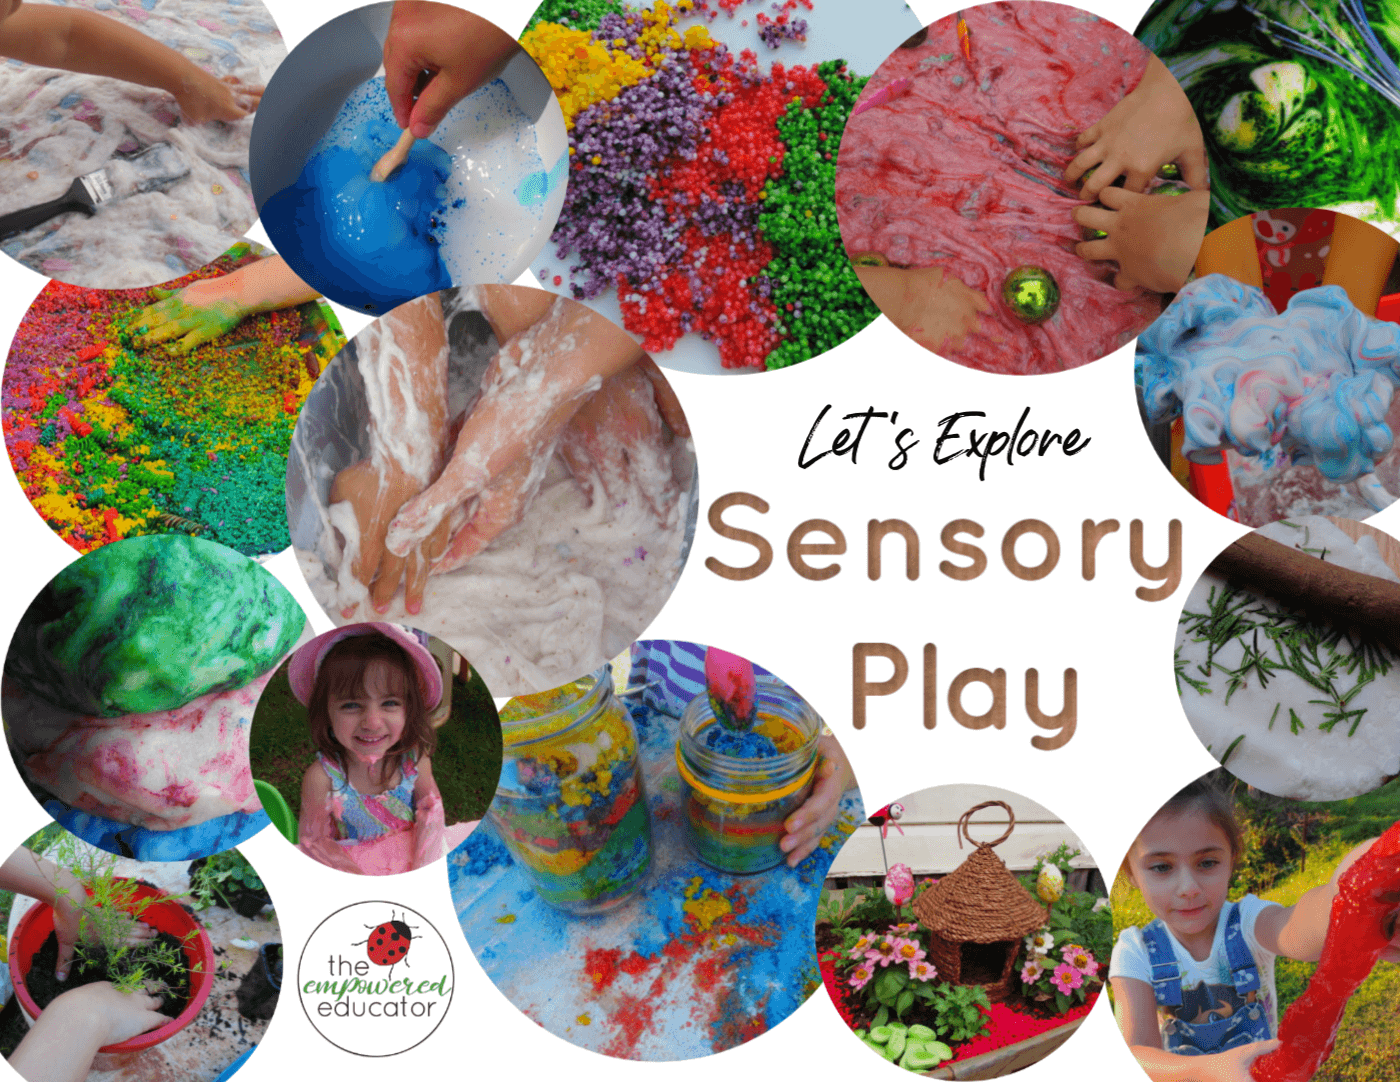 Early Learning setup ideas, play activities, programming and planning support for early childhood educators, teachers, homeschool families, pre-k, childcare and family day care.This is a HUGE collection of examples, photos, inspiration, sustainability, play, leadership tips, FDC environments & more! #earlylearningenvironments #earlylearningactivities #familydaycaresetup #programming